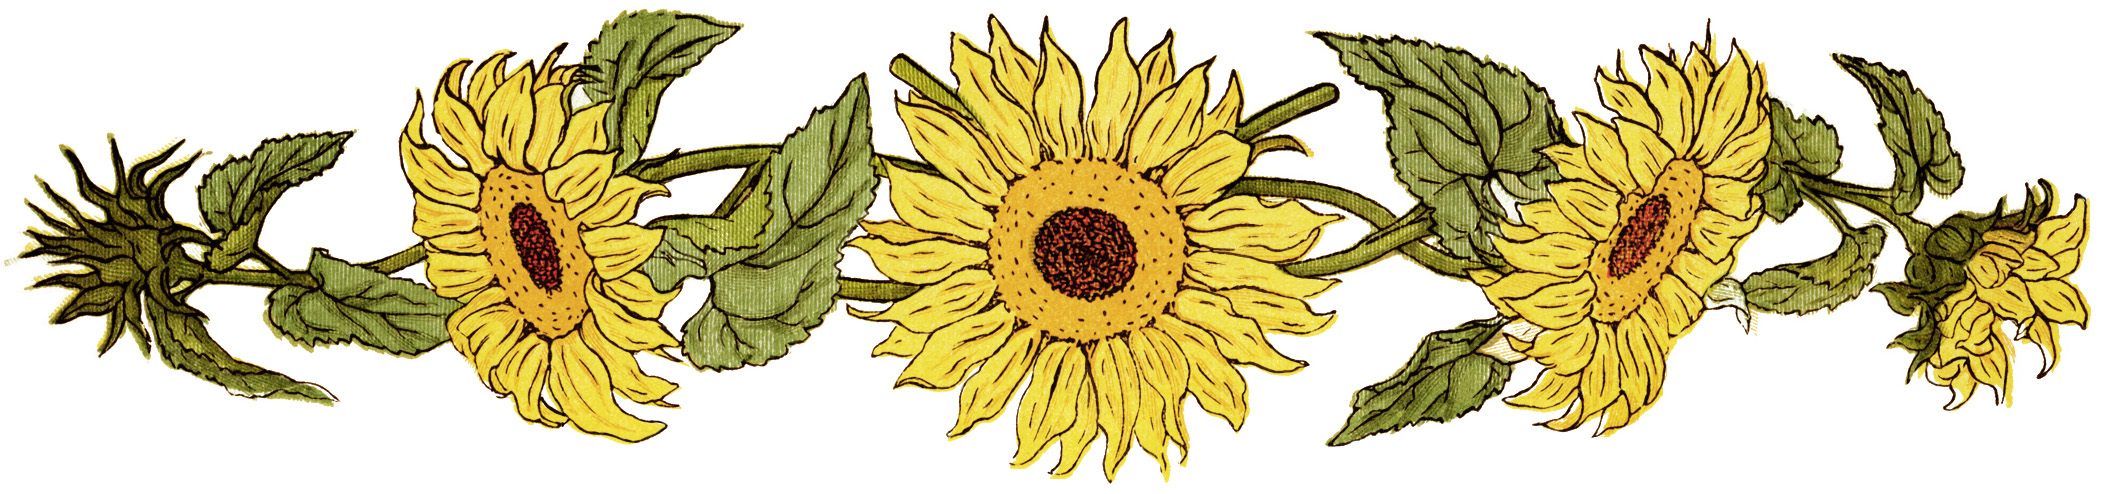 flower  sunflower clipart  free printable sunflower  sunflower graphicSunflower Images Clip Art